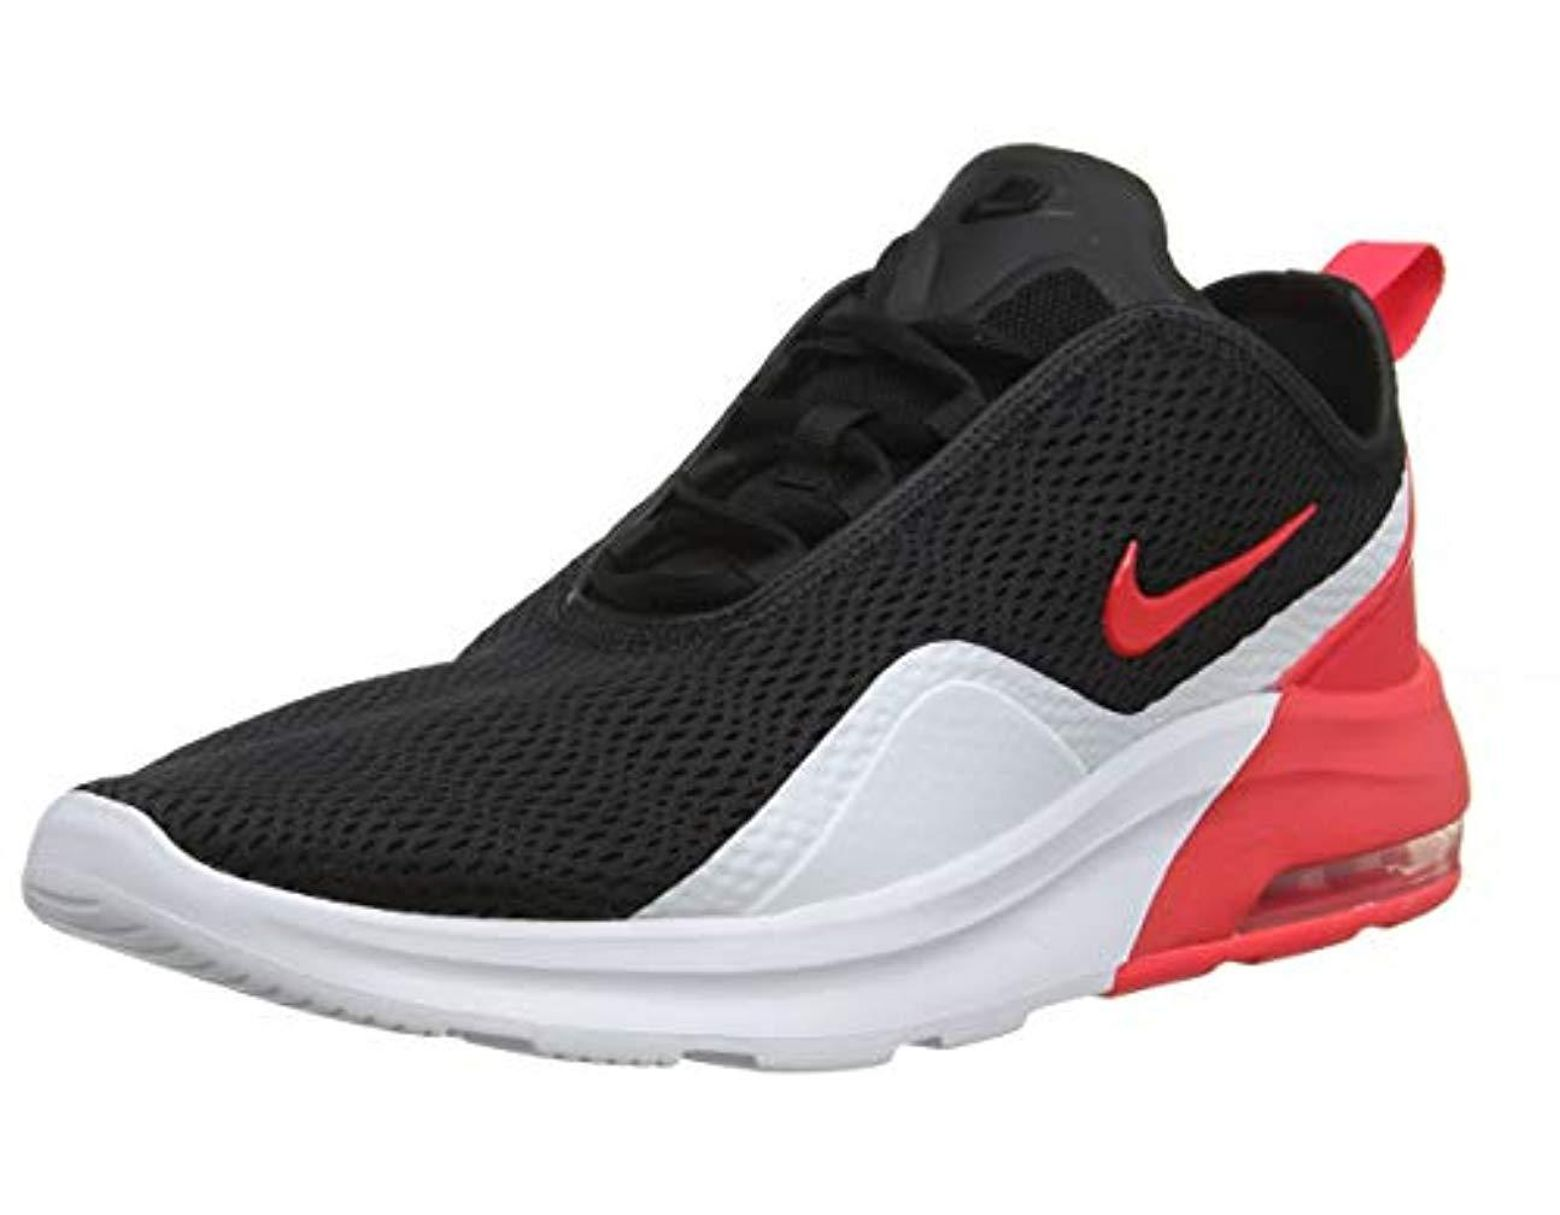 c740257fea Nike Air Max Motion 2 Running Shoes, Multicolour (black/red Orbit/white  005), 6 Uk in Black for Men - Save 3% - Lyst